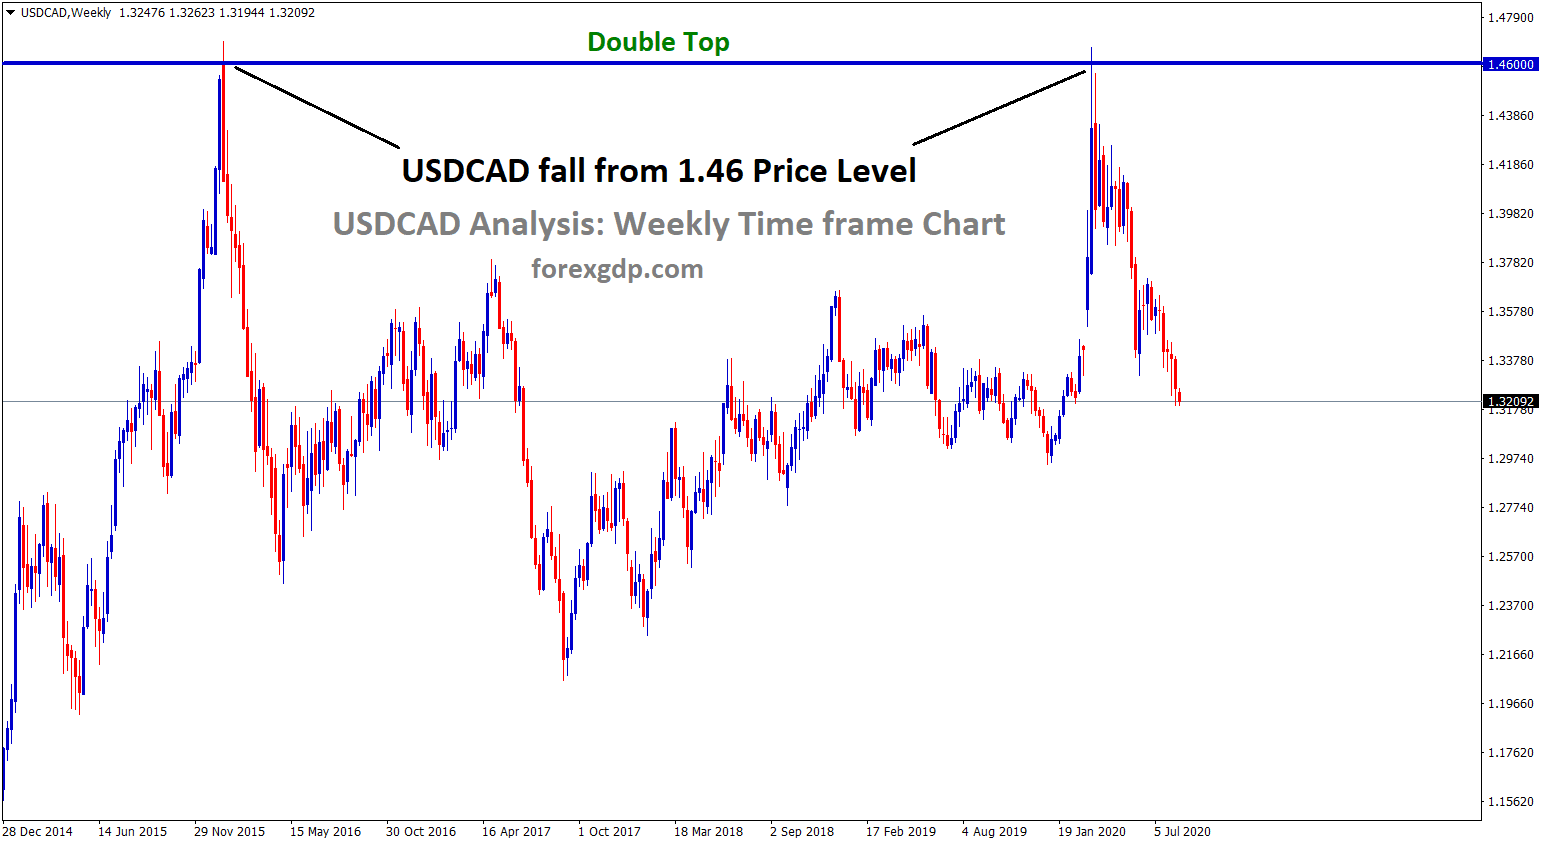 USDCAD double top formation